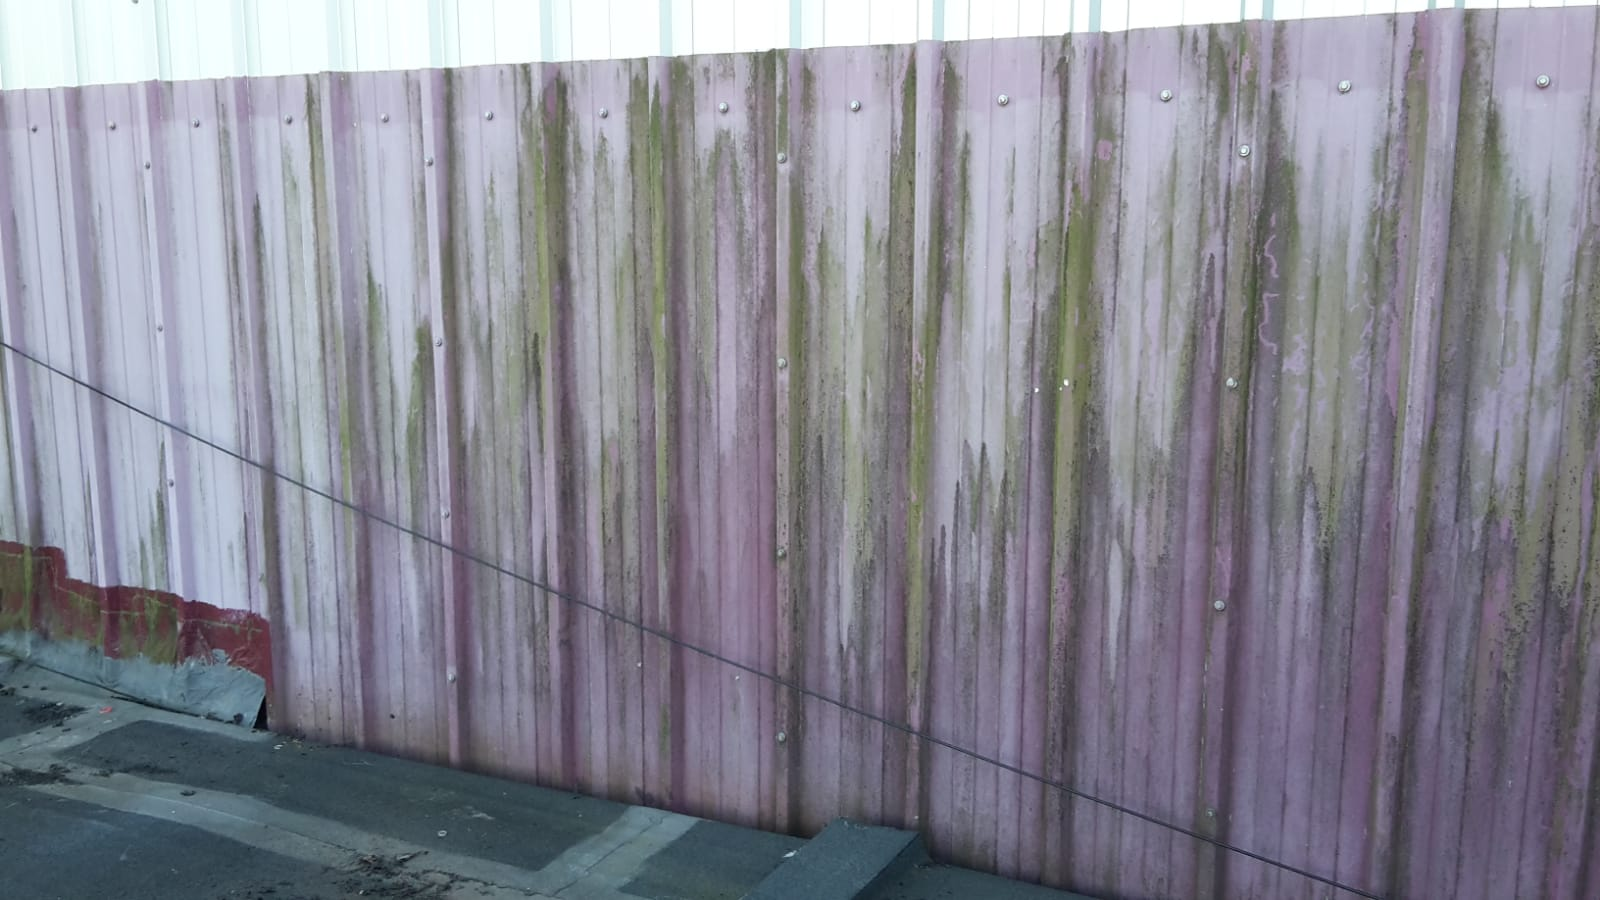 Dirty cladding panels